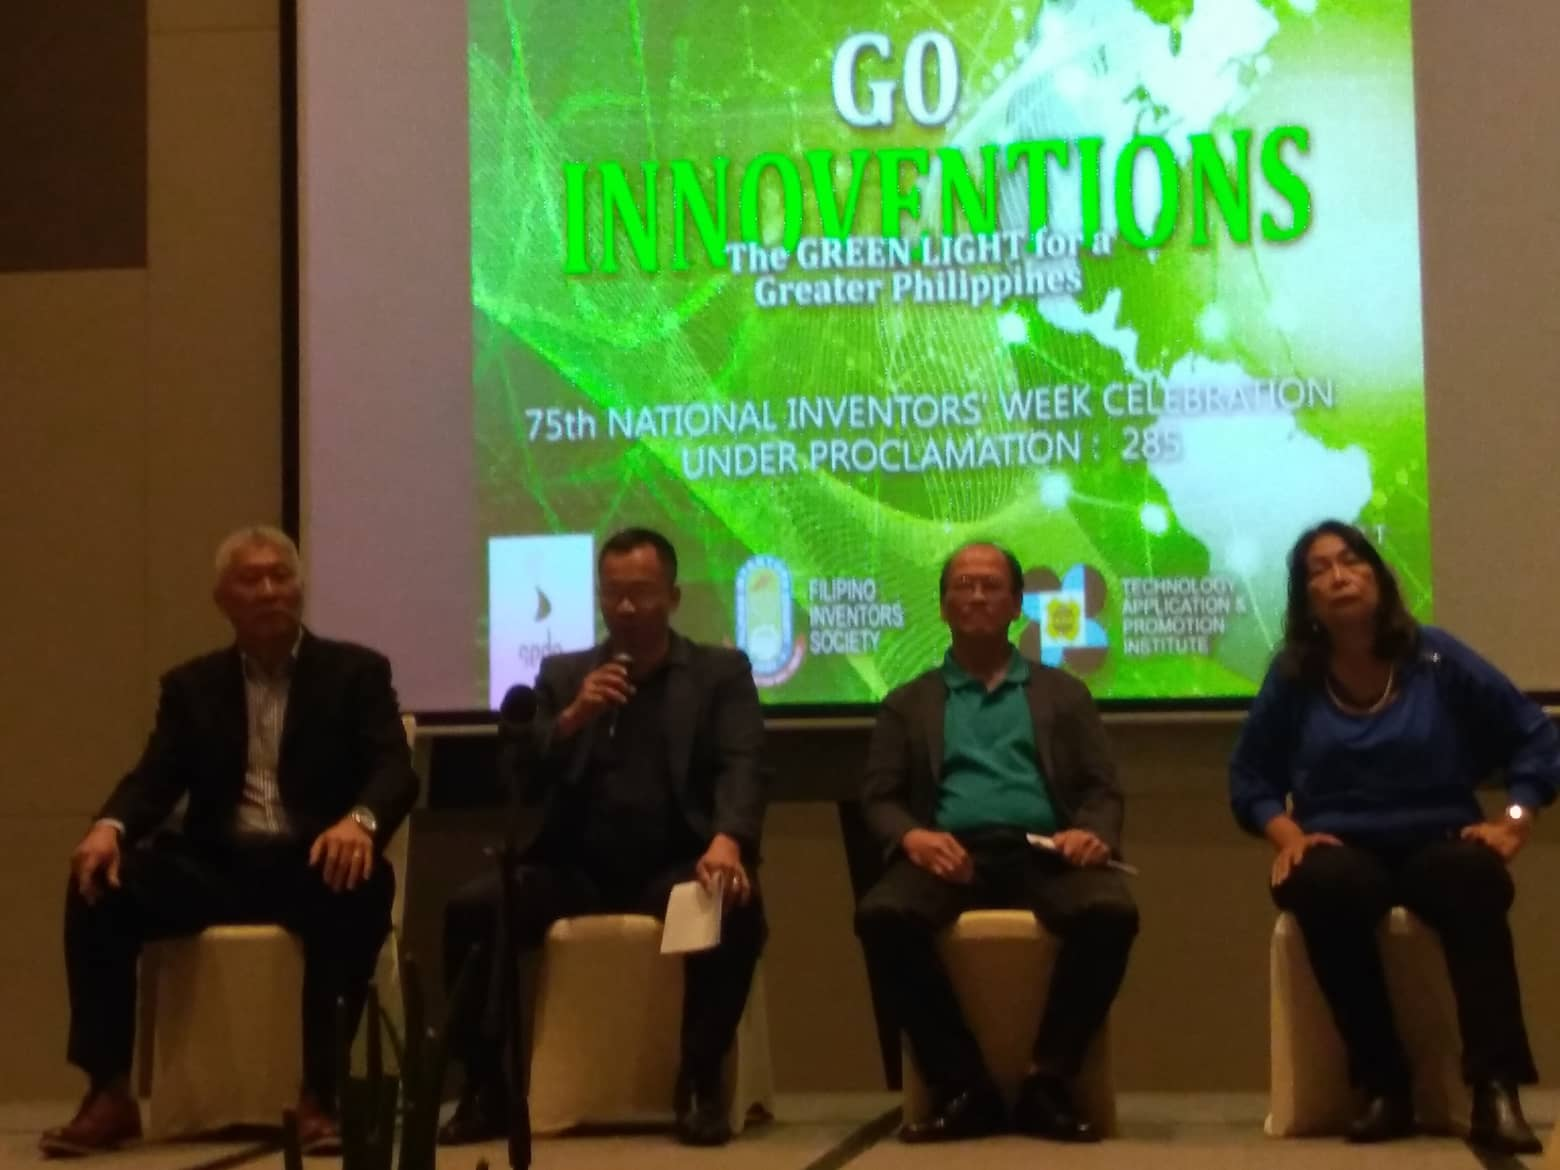 GO INNOVATIONS: The Green Light for Greater Phil.